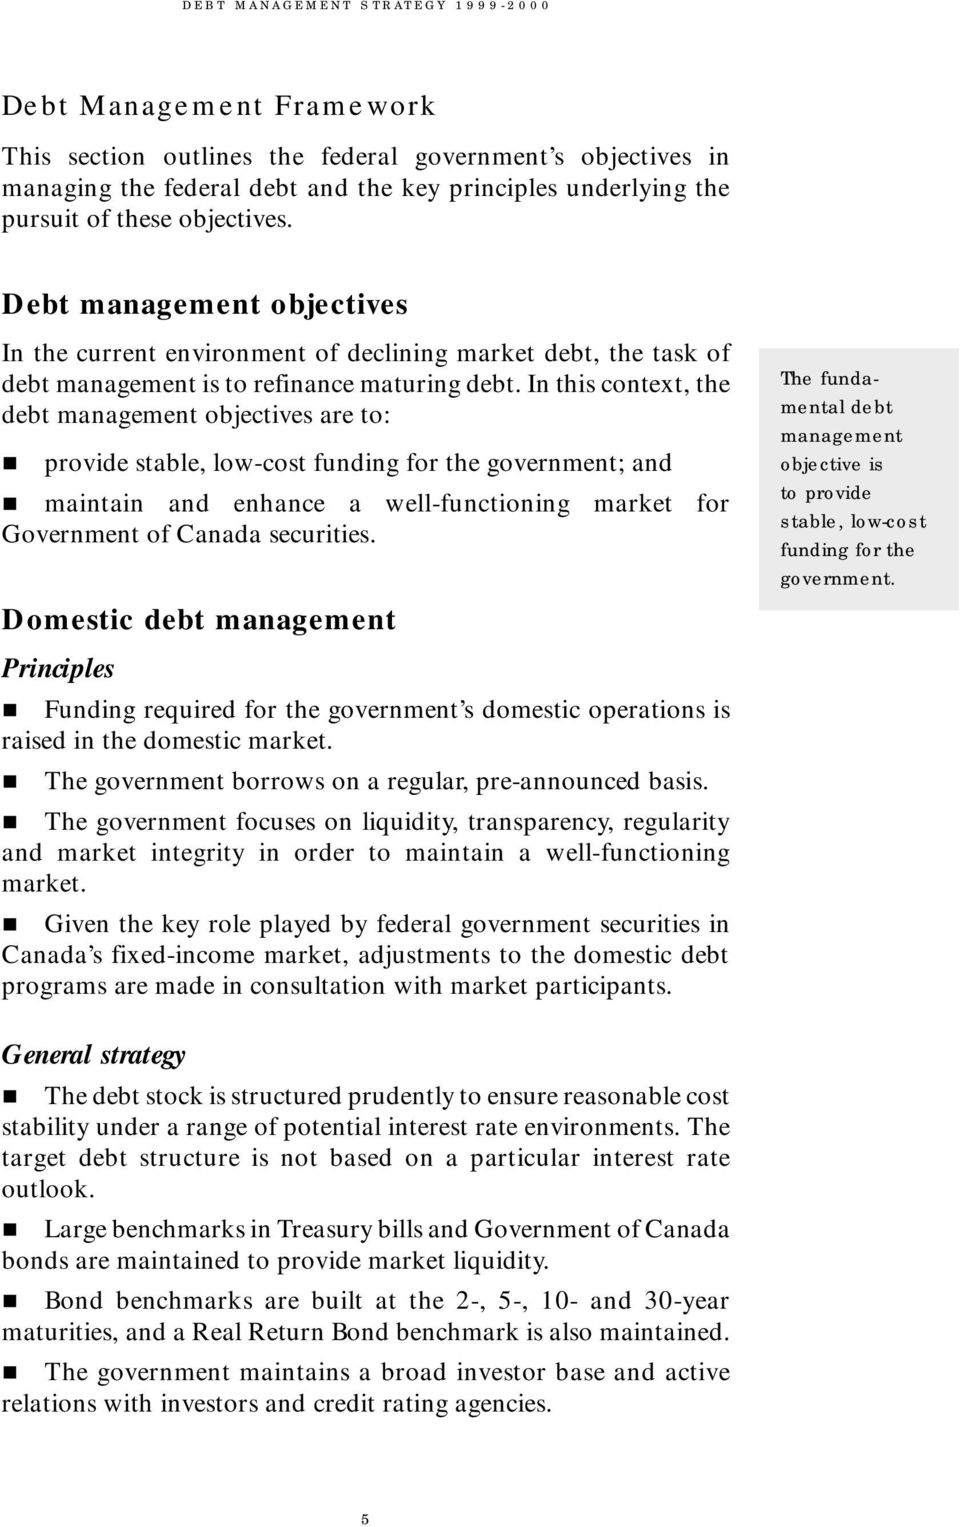 In this context, the debt management objectives are to: provide stable, low-cost funding for the government; and maintain and enhance a well-functioning market for Government of Canada securities.